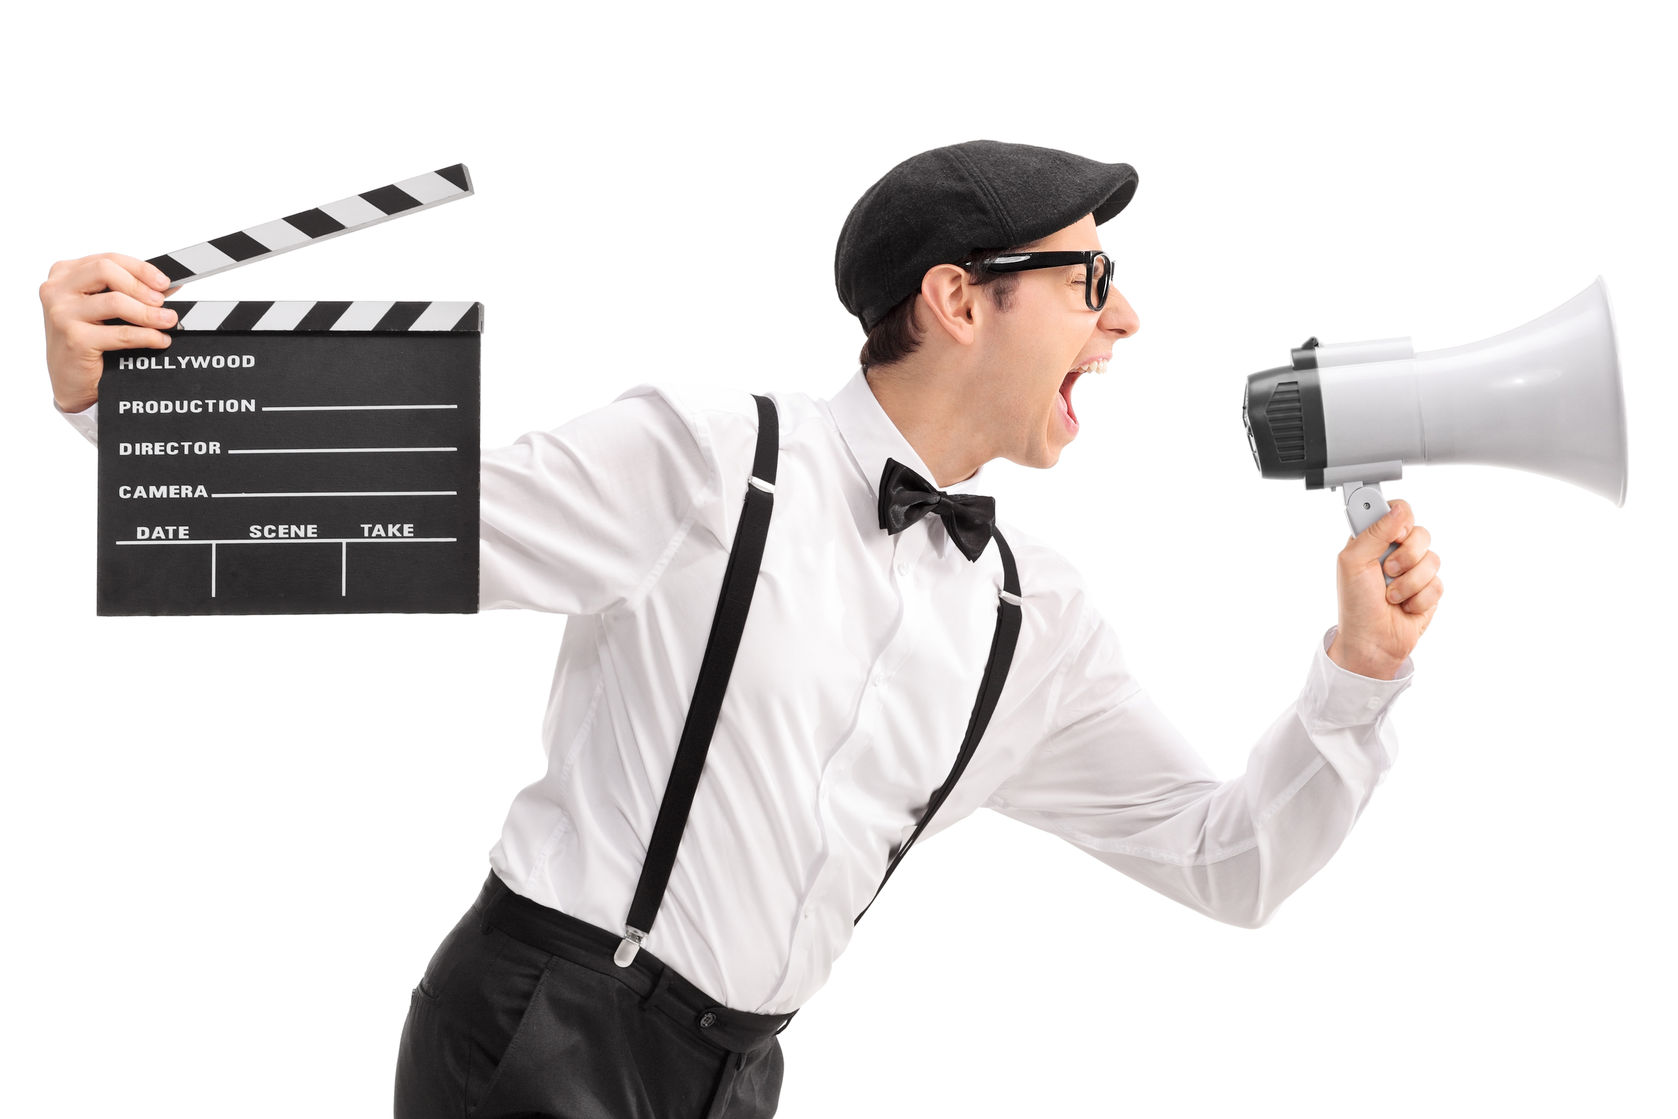 42870735 - young movie director holding a clapperboard and shouting on a megaphone isolated on white background